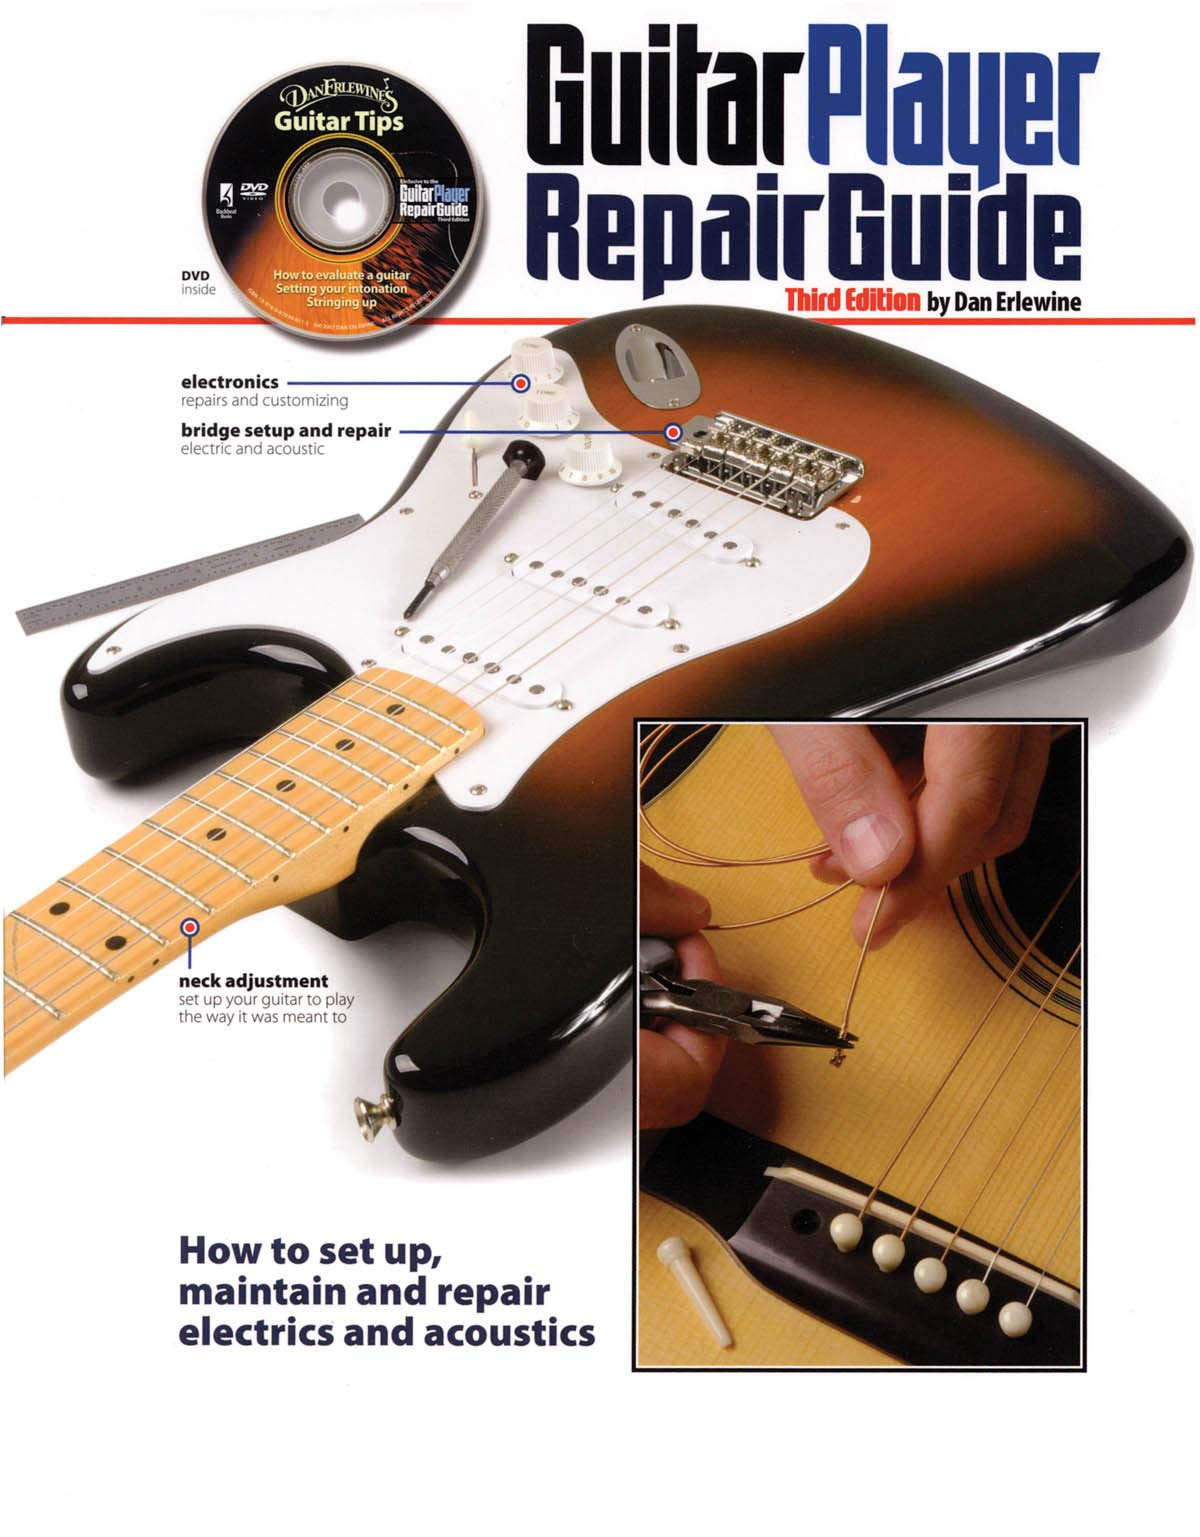 The Guitar Player Repair Guide: Amazon.es: Dan Erlewine: Libros en idiomas extranjeros